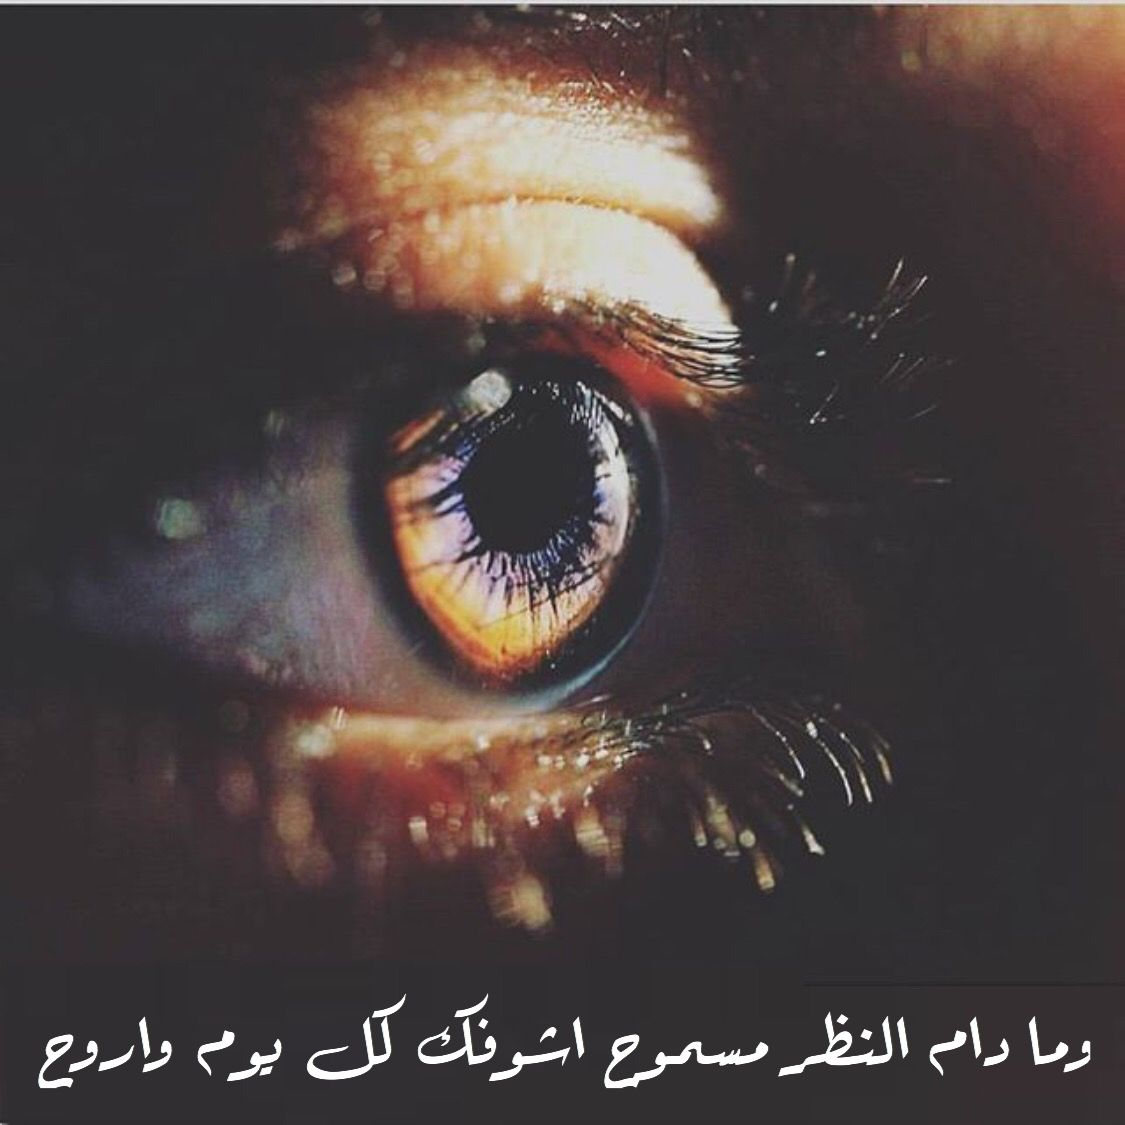 Pin By حمد البلوشي On الحب Photography Captions Beautiful Words Arabic Quotes